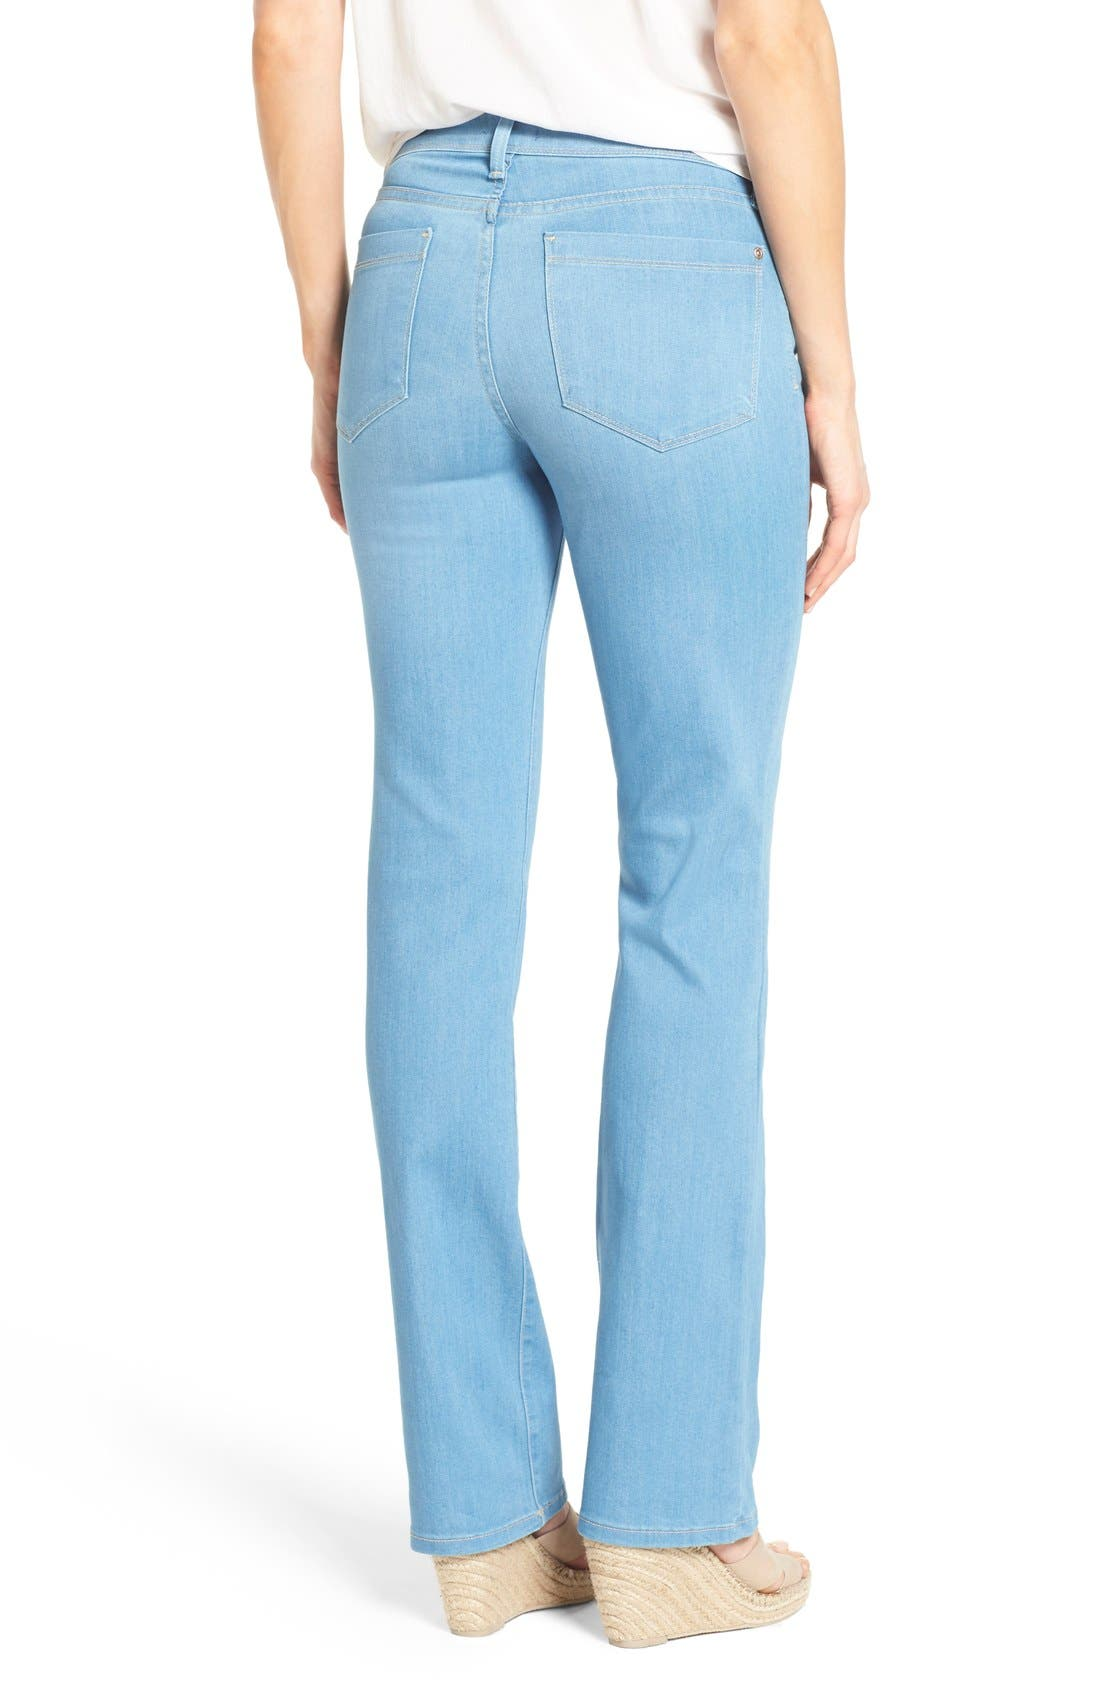 'Barbara' Stretch Bootcut Jeans,                             Alternate thumbnail 2, color,